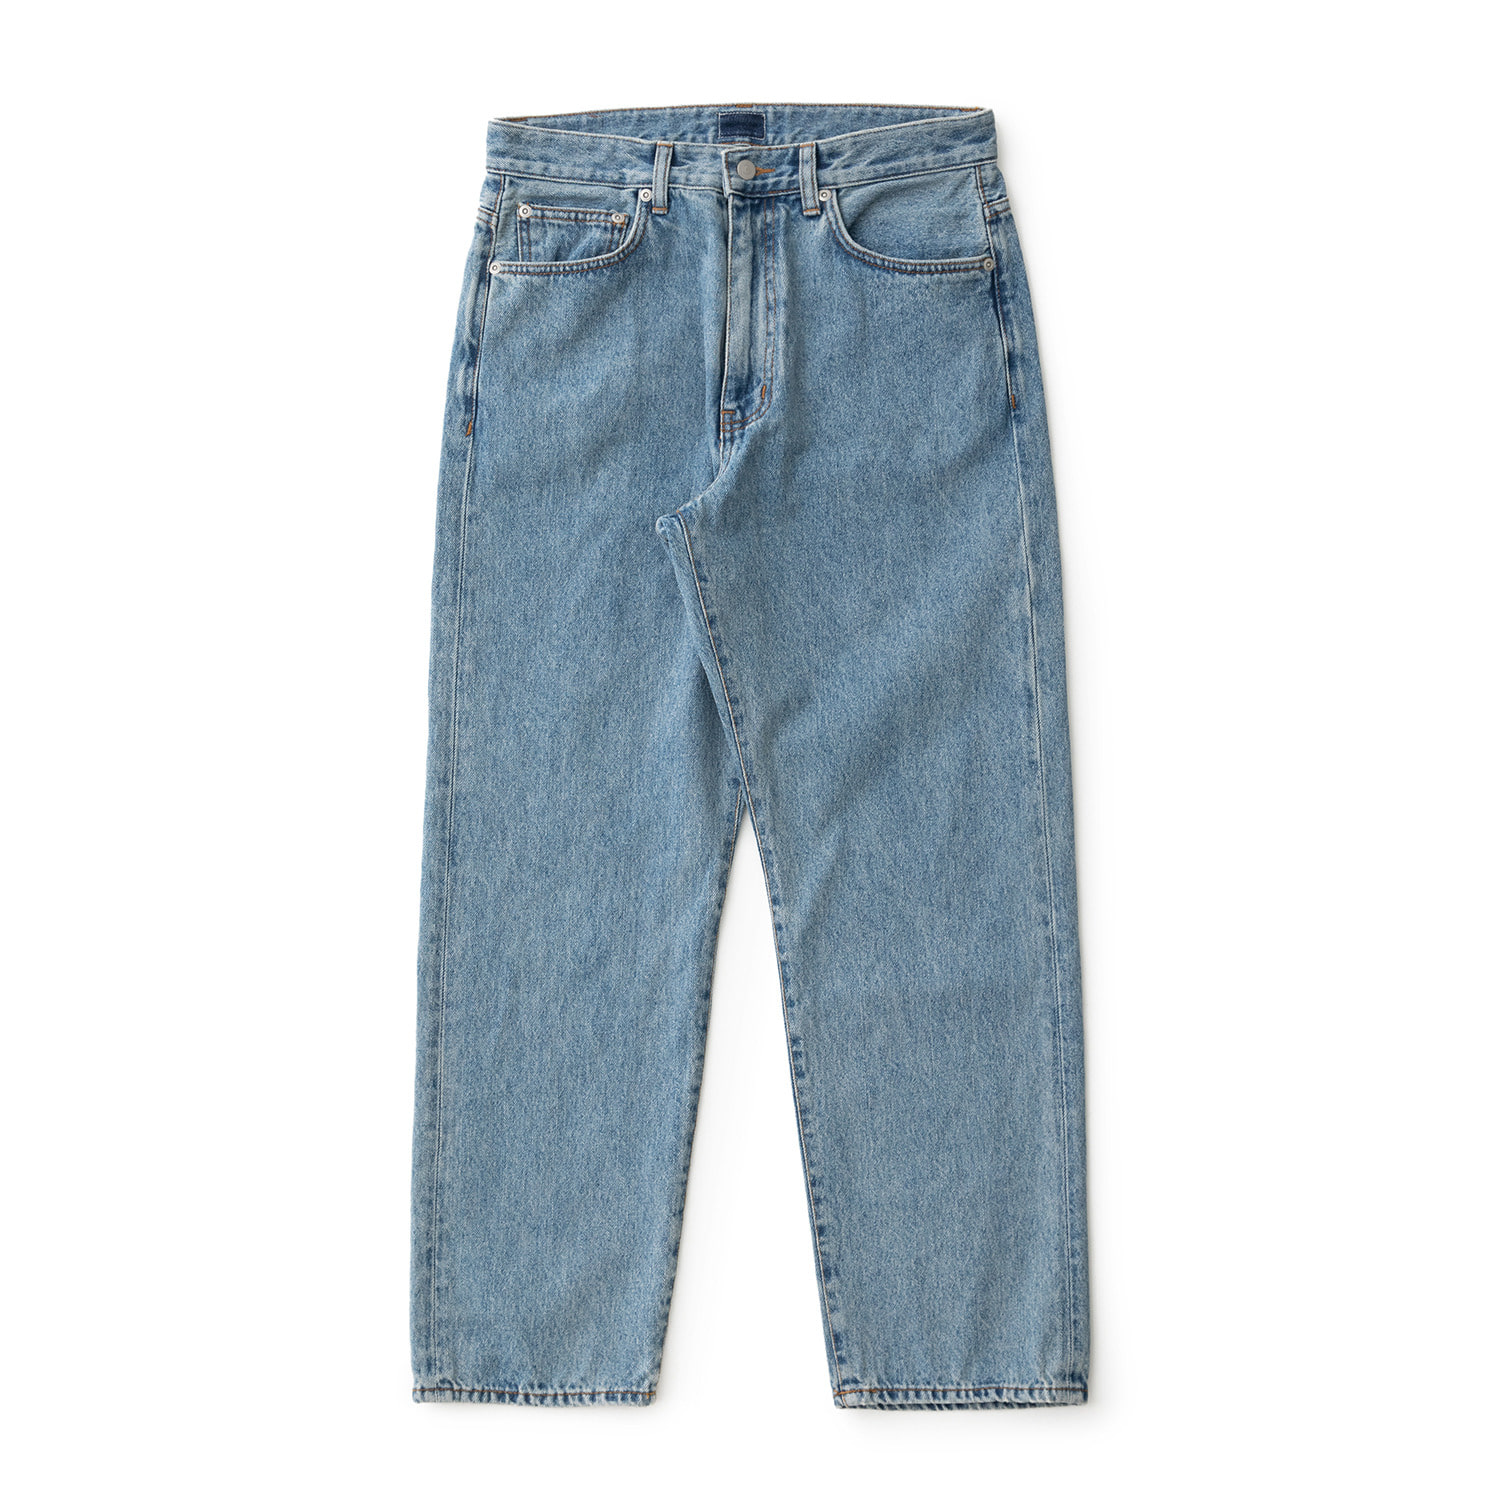 A/O 21SS Study Denim Type 4 (Stone Wash)